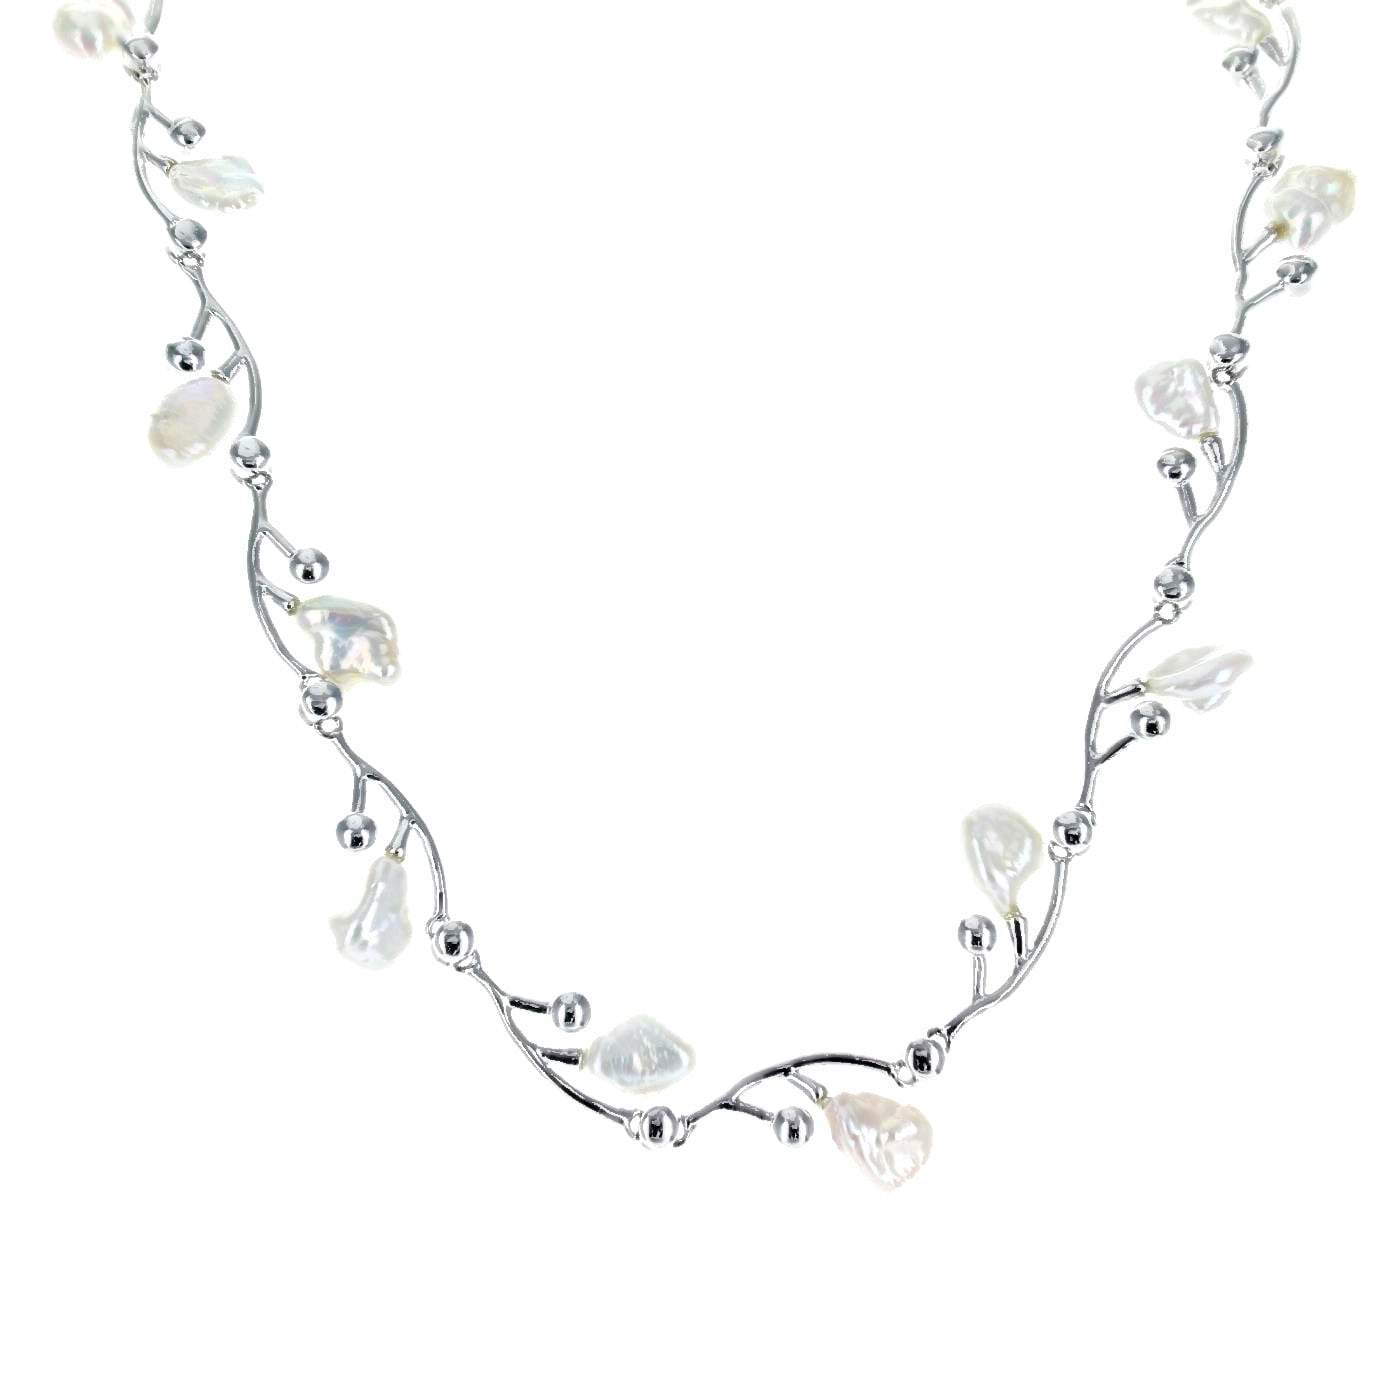 Branched Freshwater Pearl Necklace